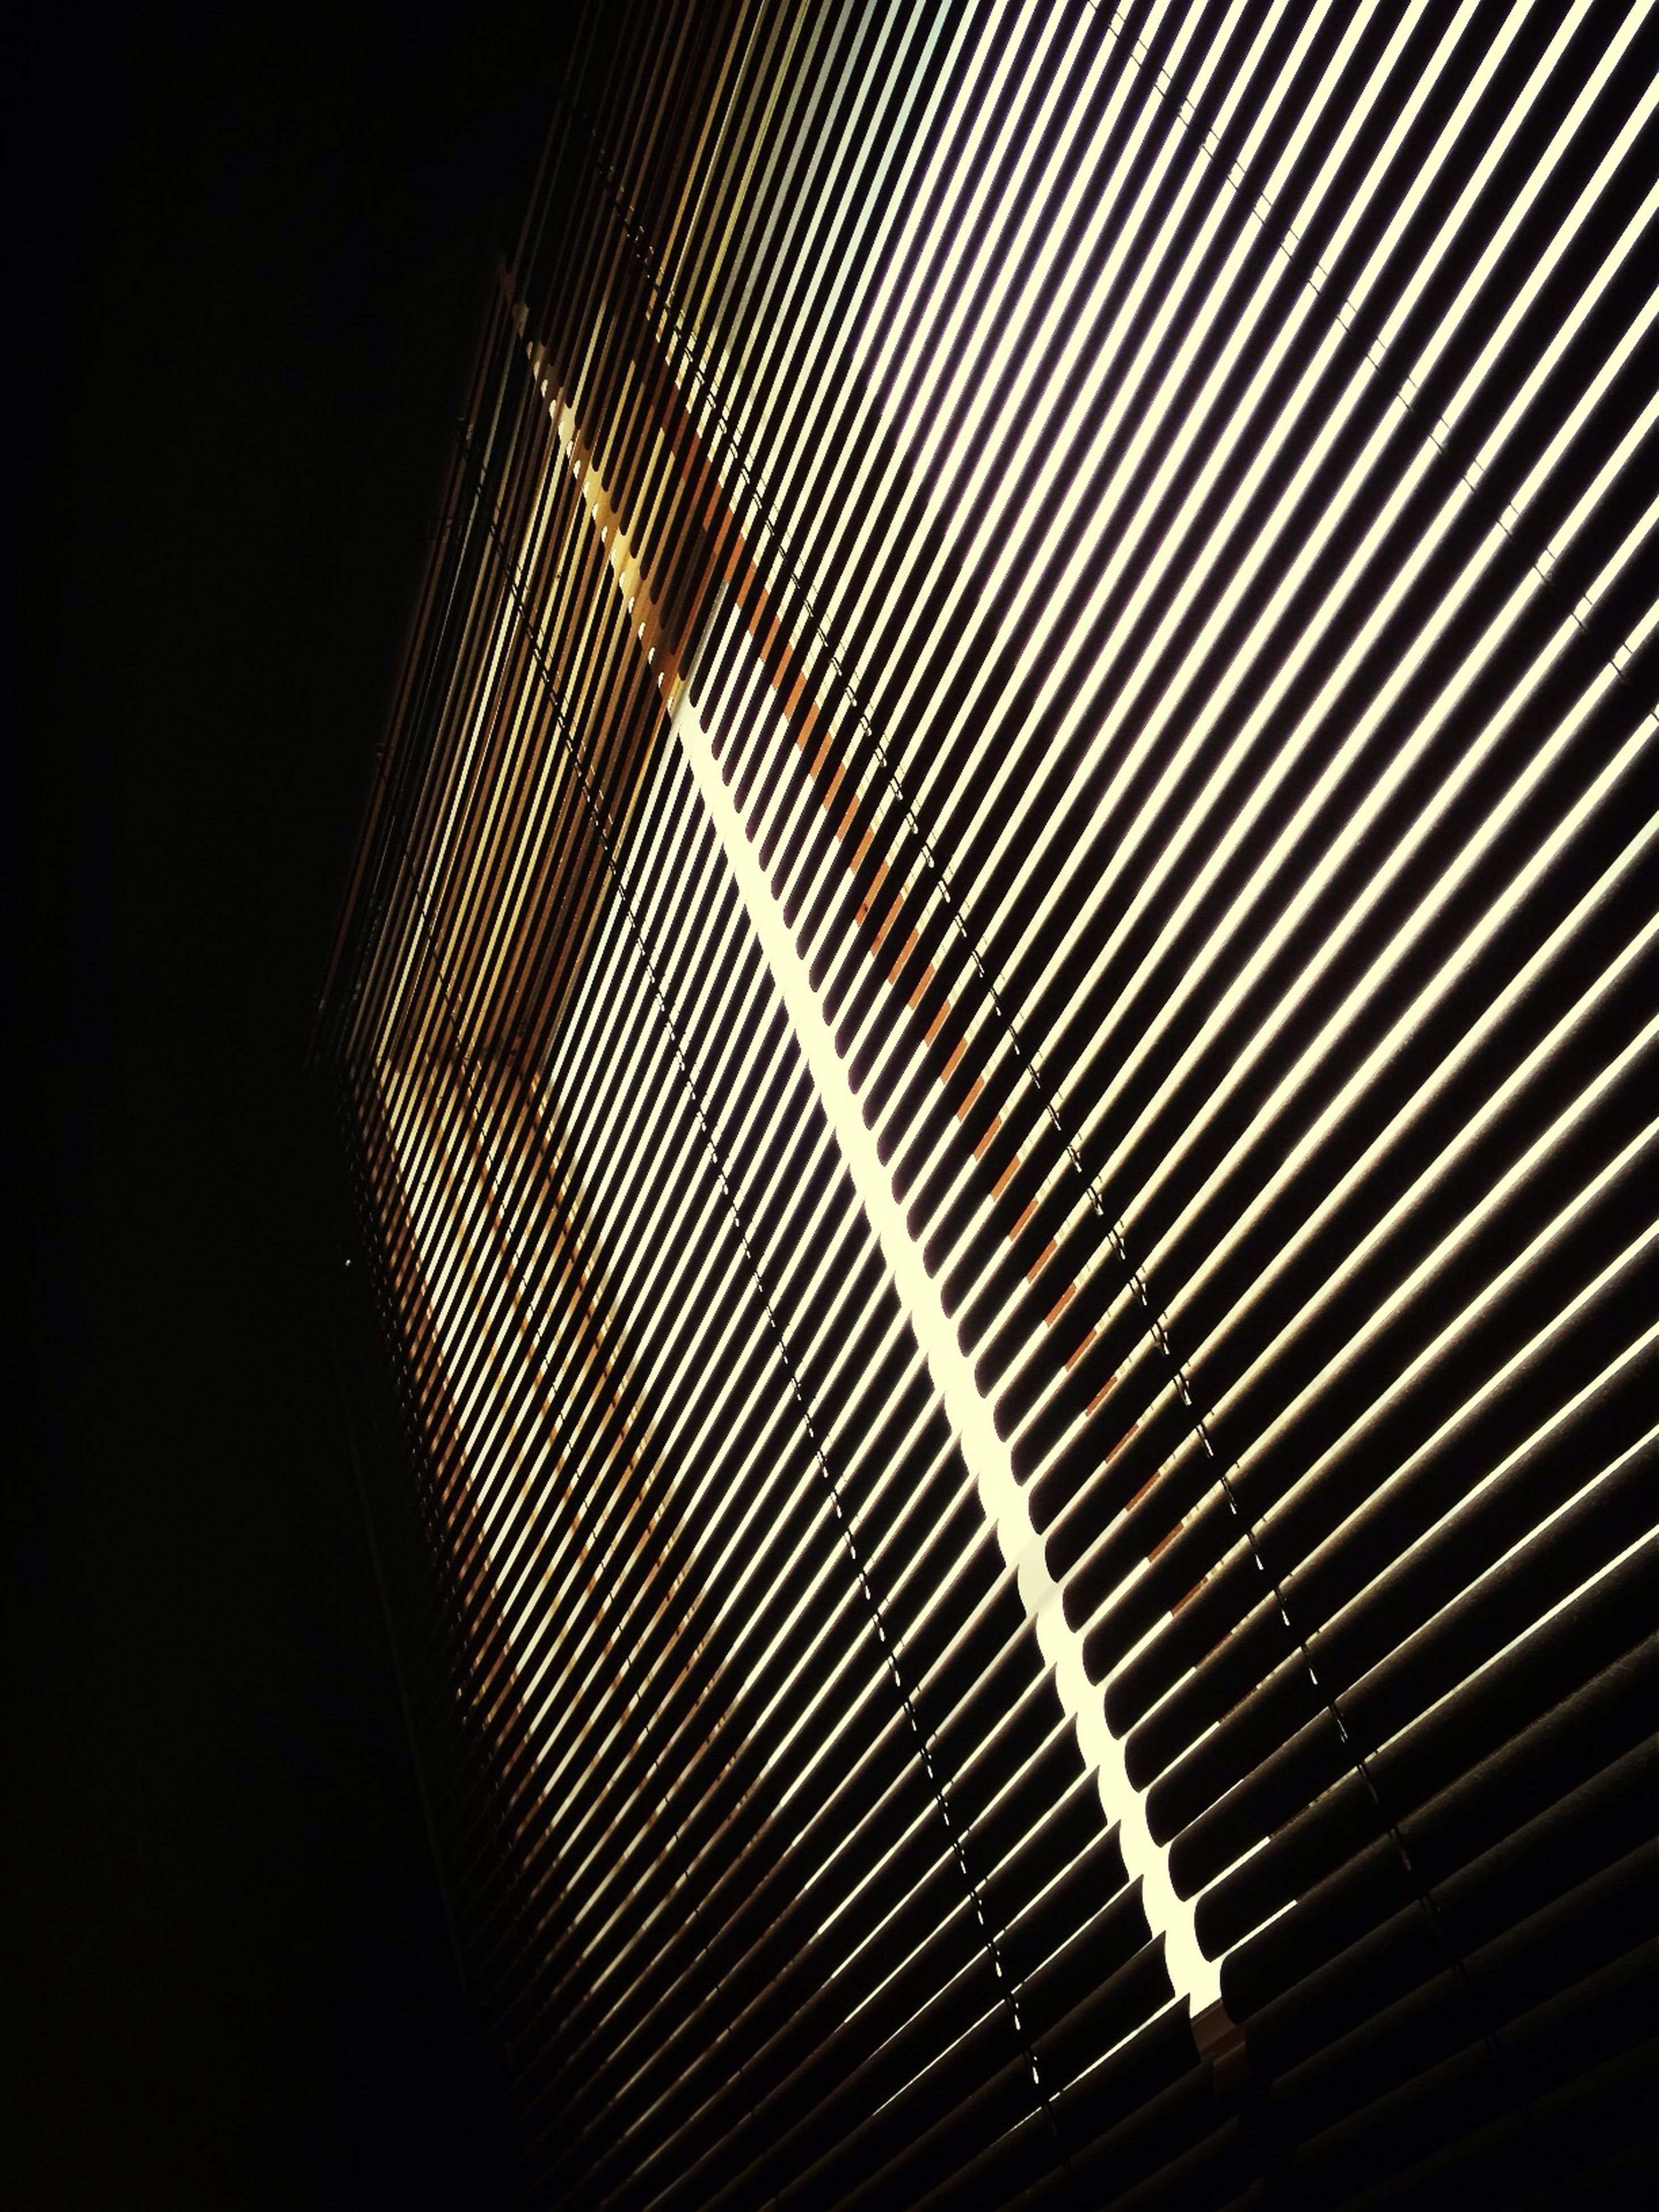 low angle view, pattern, illuminated, night, modern, built structure, architecture, indoors, design, metal, abstract, backgrounds, repetition, lighting equipment, no people, full frame, electricity, technology, light - natural phenomenon, metallic